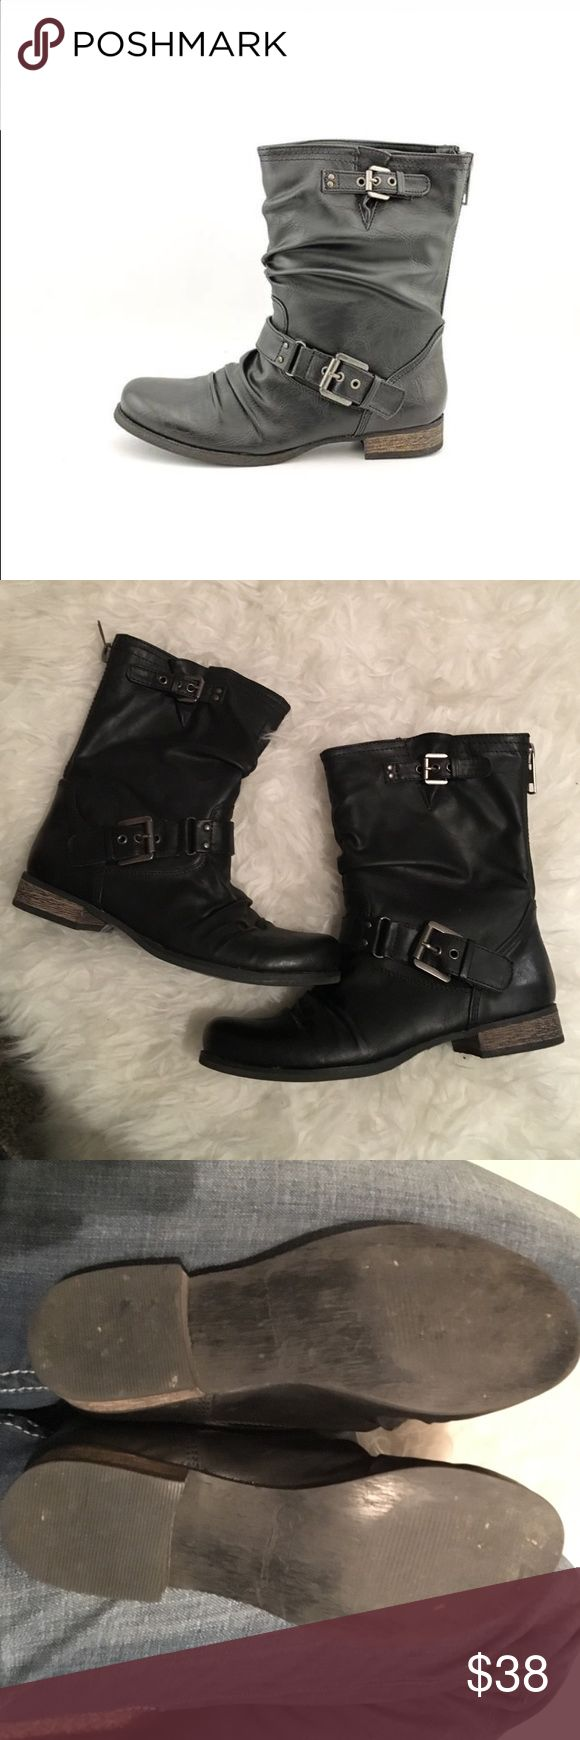 """NEW Carlos Santana Boots 🍁Stay in style this fall in the Ashley boot from Carlos by Carlos Santana. 🍁Faux leather upper in a mid-calf boot style with a round toe Decorative straps with metal buckles and eyelets. Smooth lining, cushioning insole 1 inch heel, Approx 8"""" boot shaft height Approx. 1"""" heel height ❗❗️️BRAND NEW. ONLY FLAW IS SMALL SCUFF❗️❗️ shown in picture. Carlos Santana Shoes Combat & Moto Boots"""